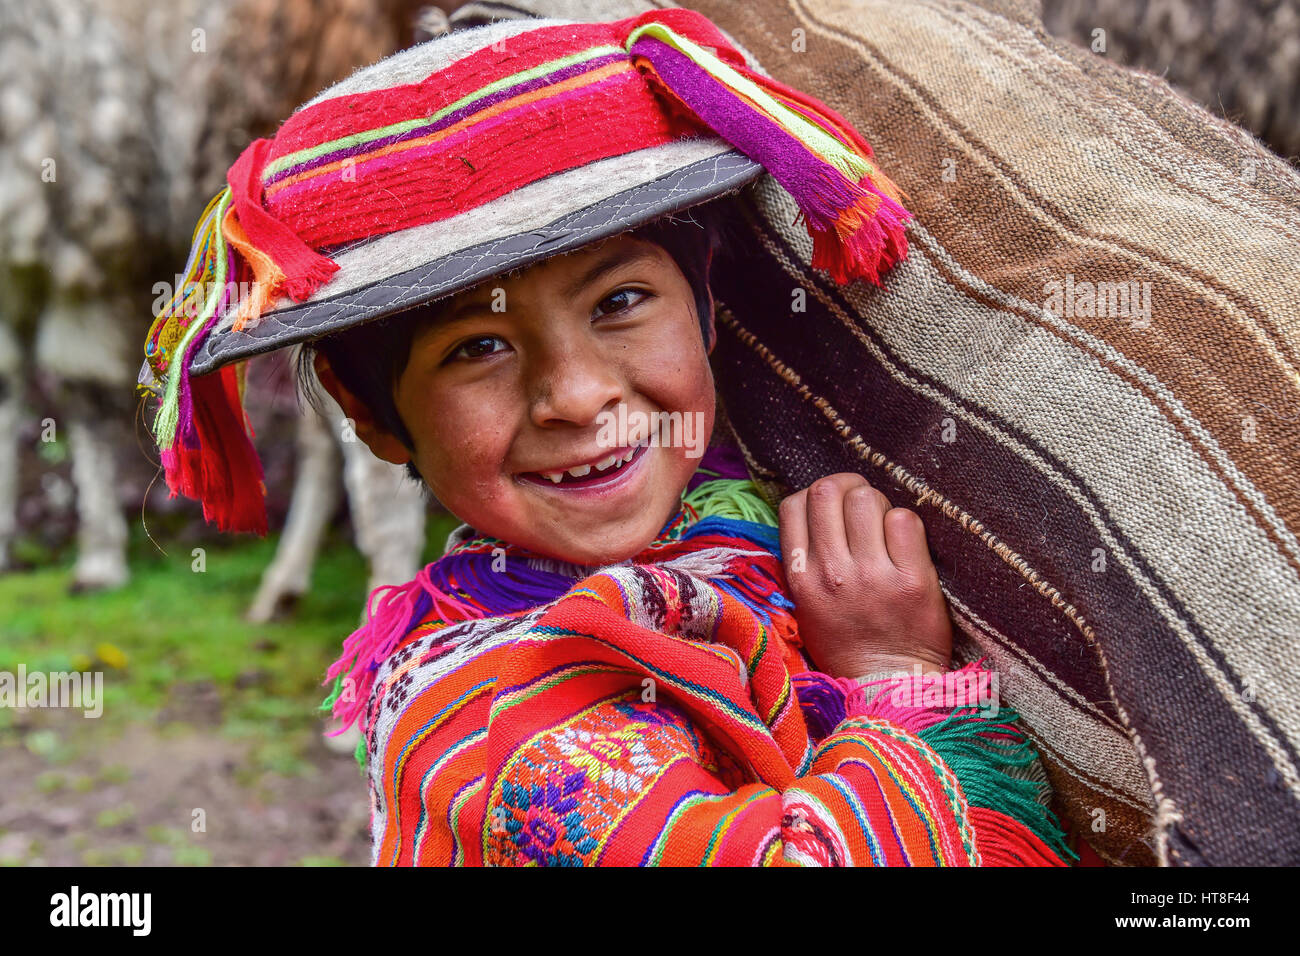 Indio Boy in traditional costume with poncho and hat, carrying bag, near Cusco, Andes, Peru - Stock Image